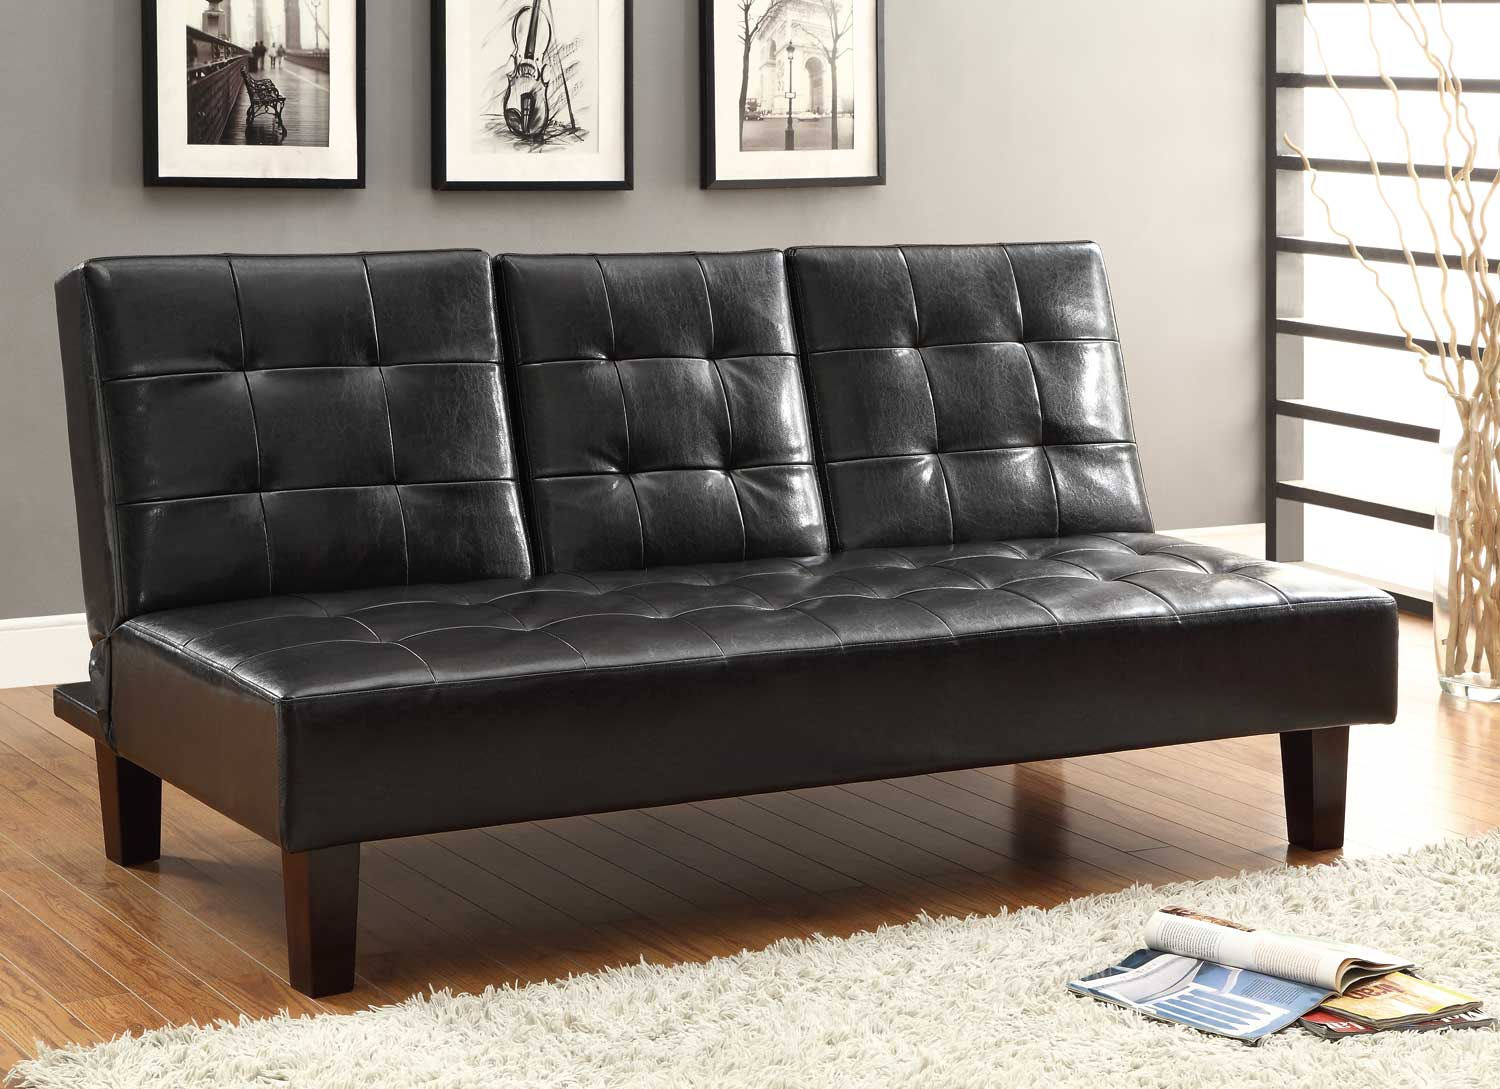 Homelegance Reel Click Clack Sofa Bed Dark Brown